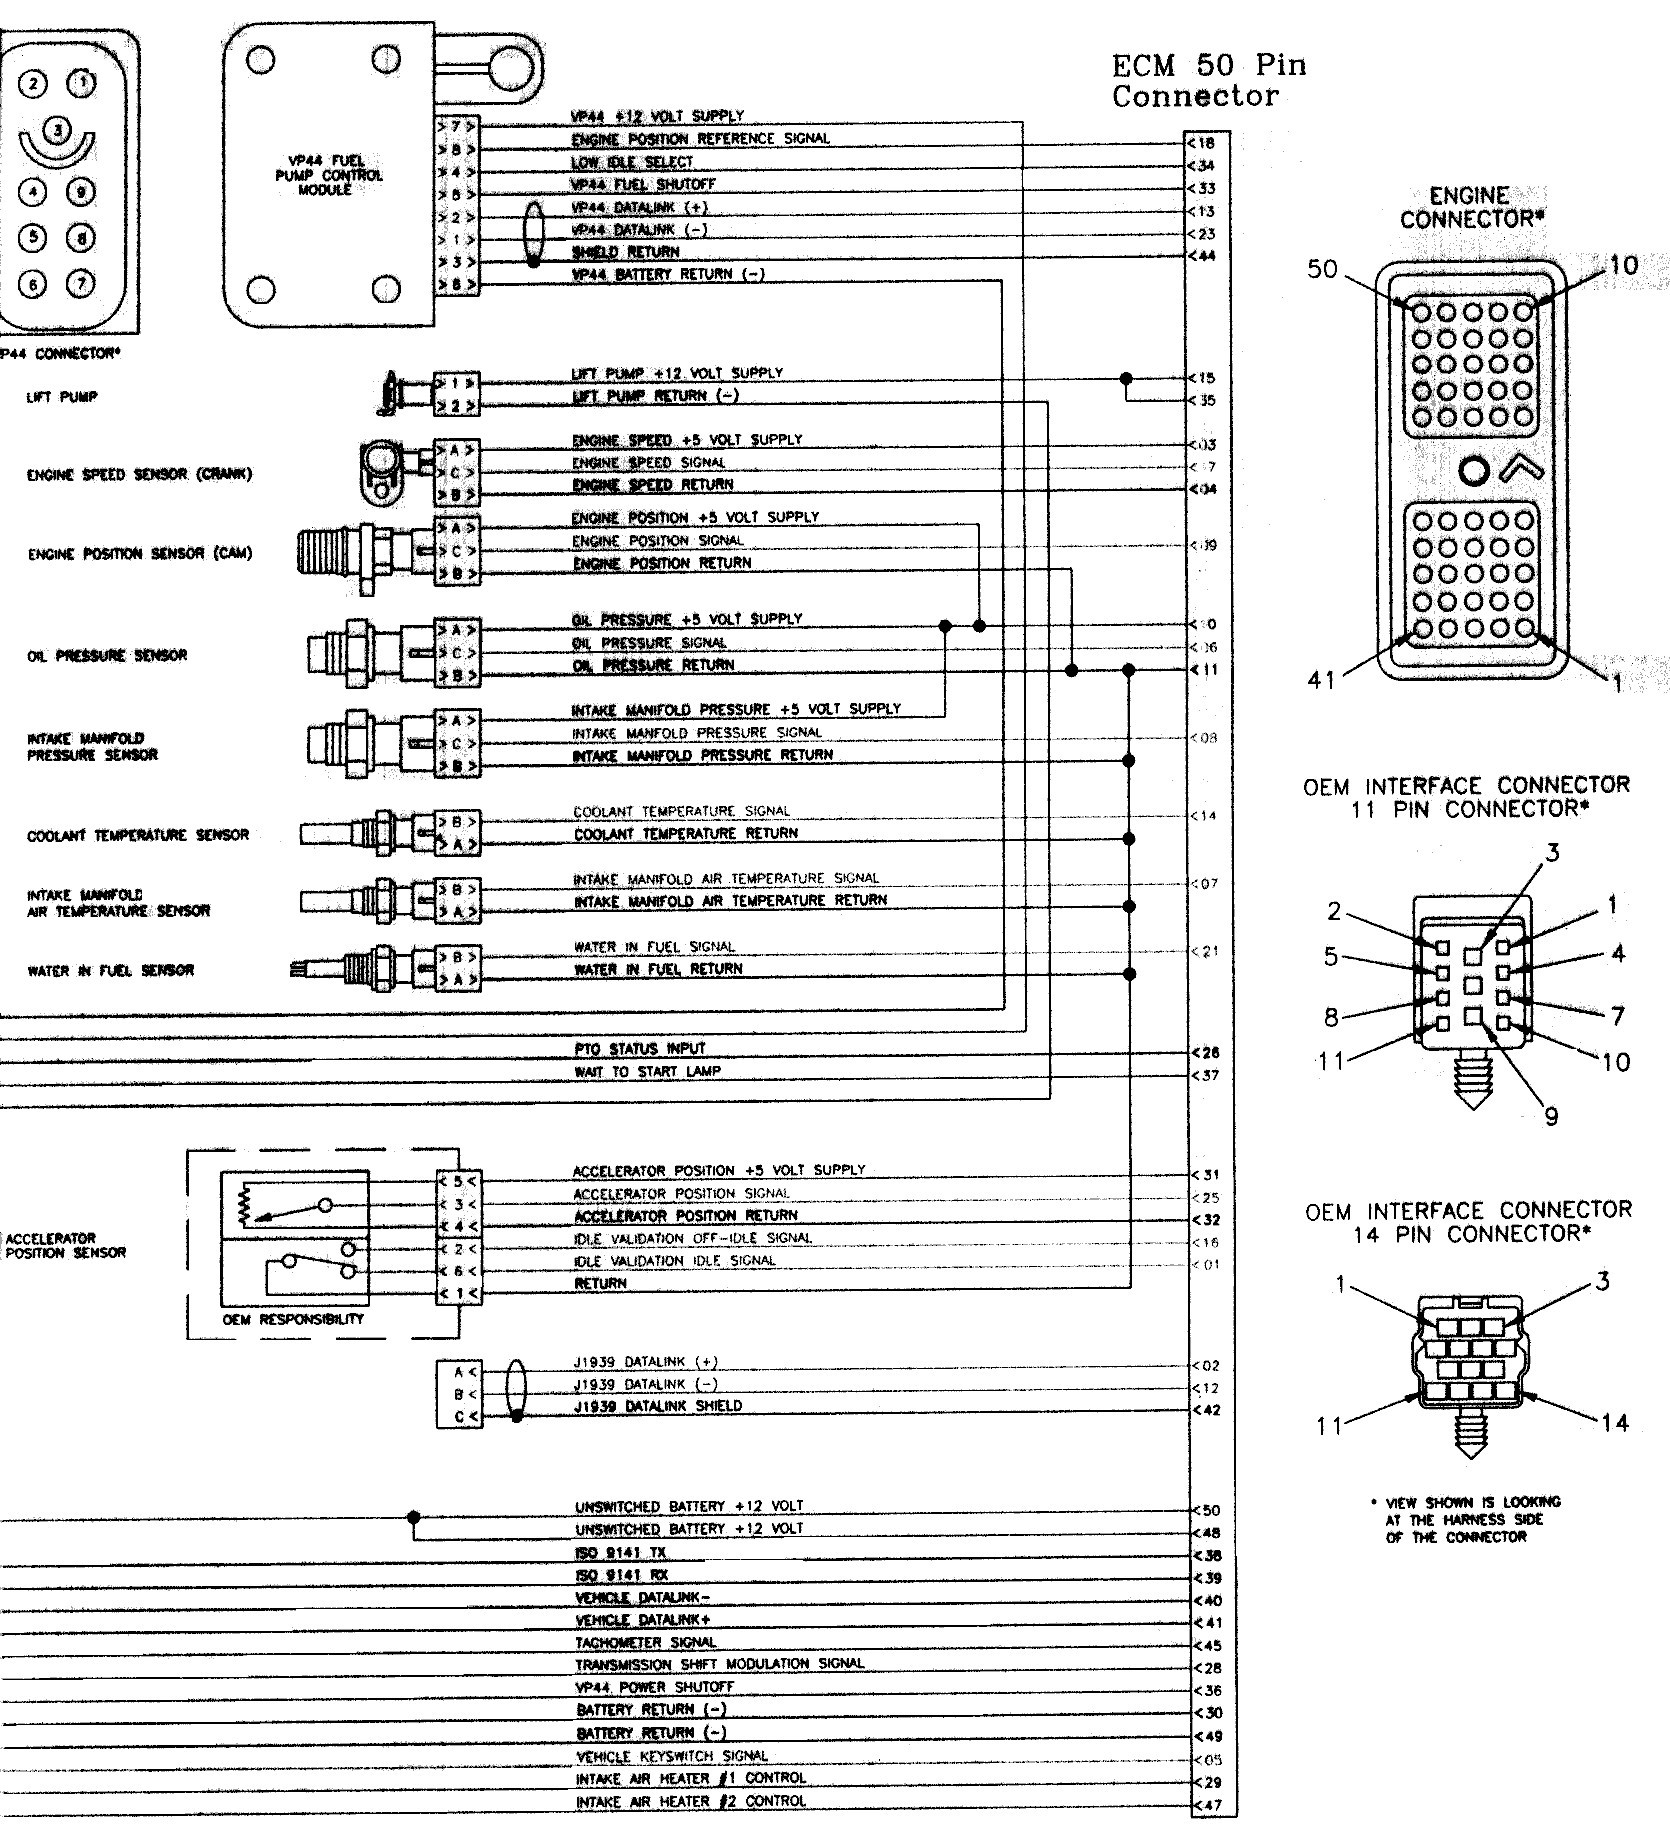 2002 dodge durango wiring diagram free picture